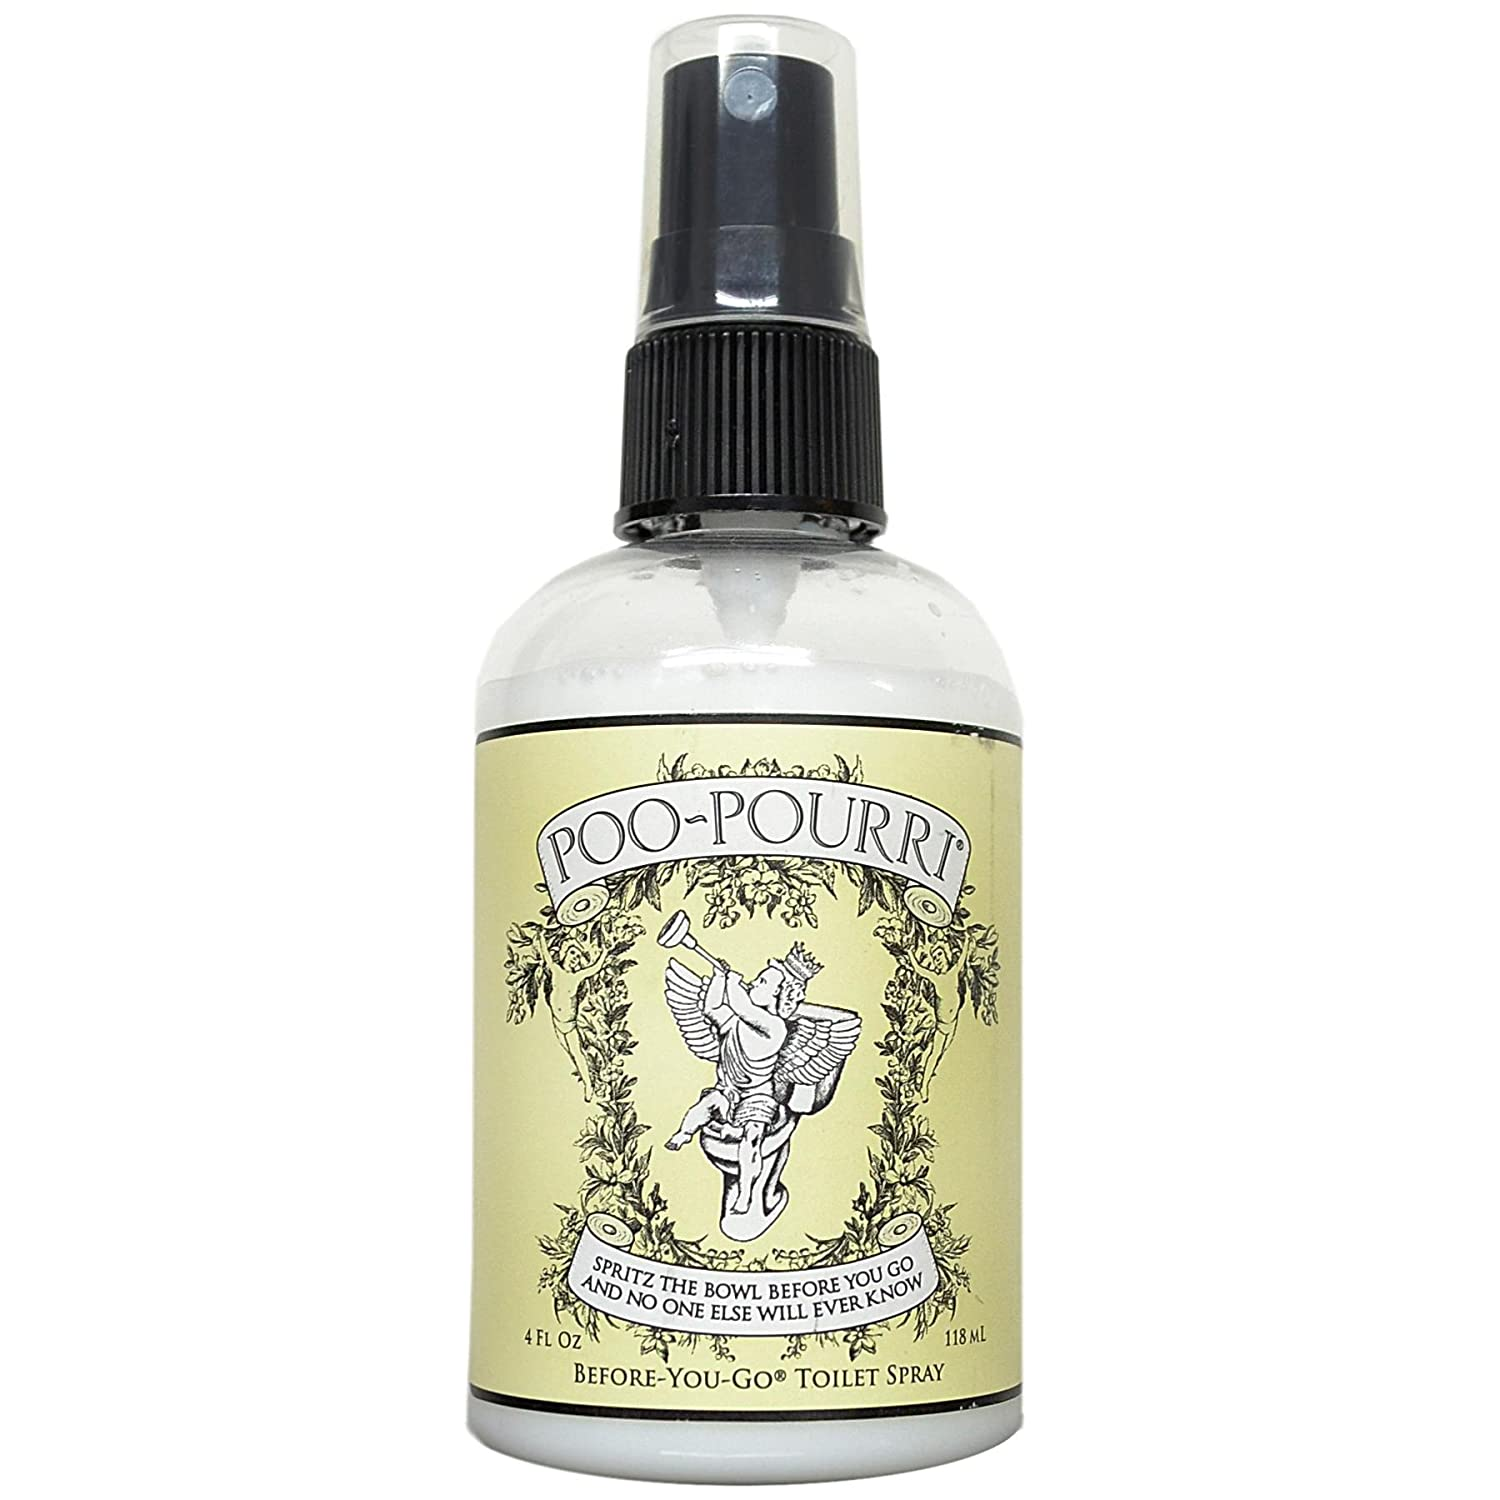 Does coffee help you go to the bathroom - Amazon Com Poo Pourri Before You Go Toilet Spray 2 Ounce Bottle Original Discontinued Home Kitchen